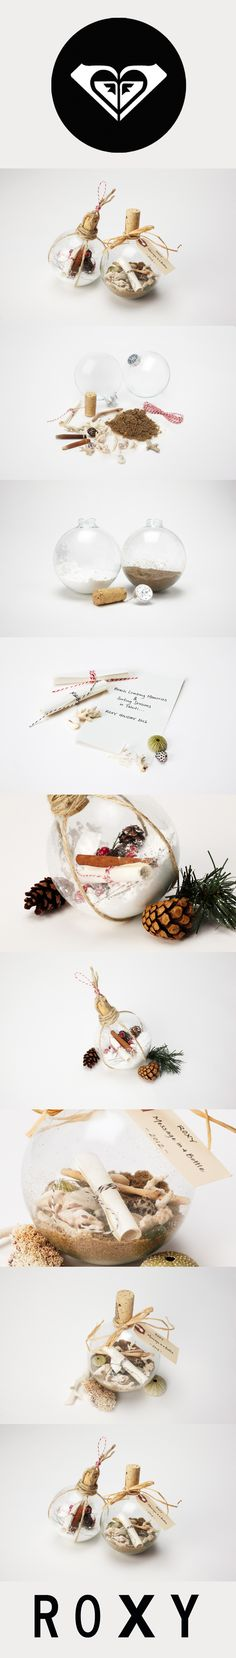 #DIY Roxy Ornaments! PIN ME!